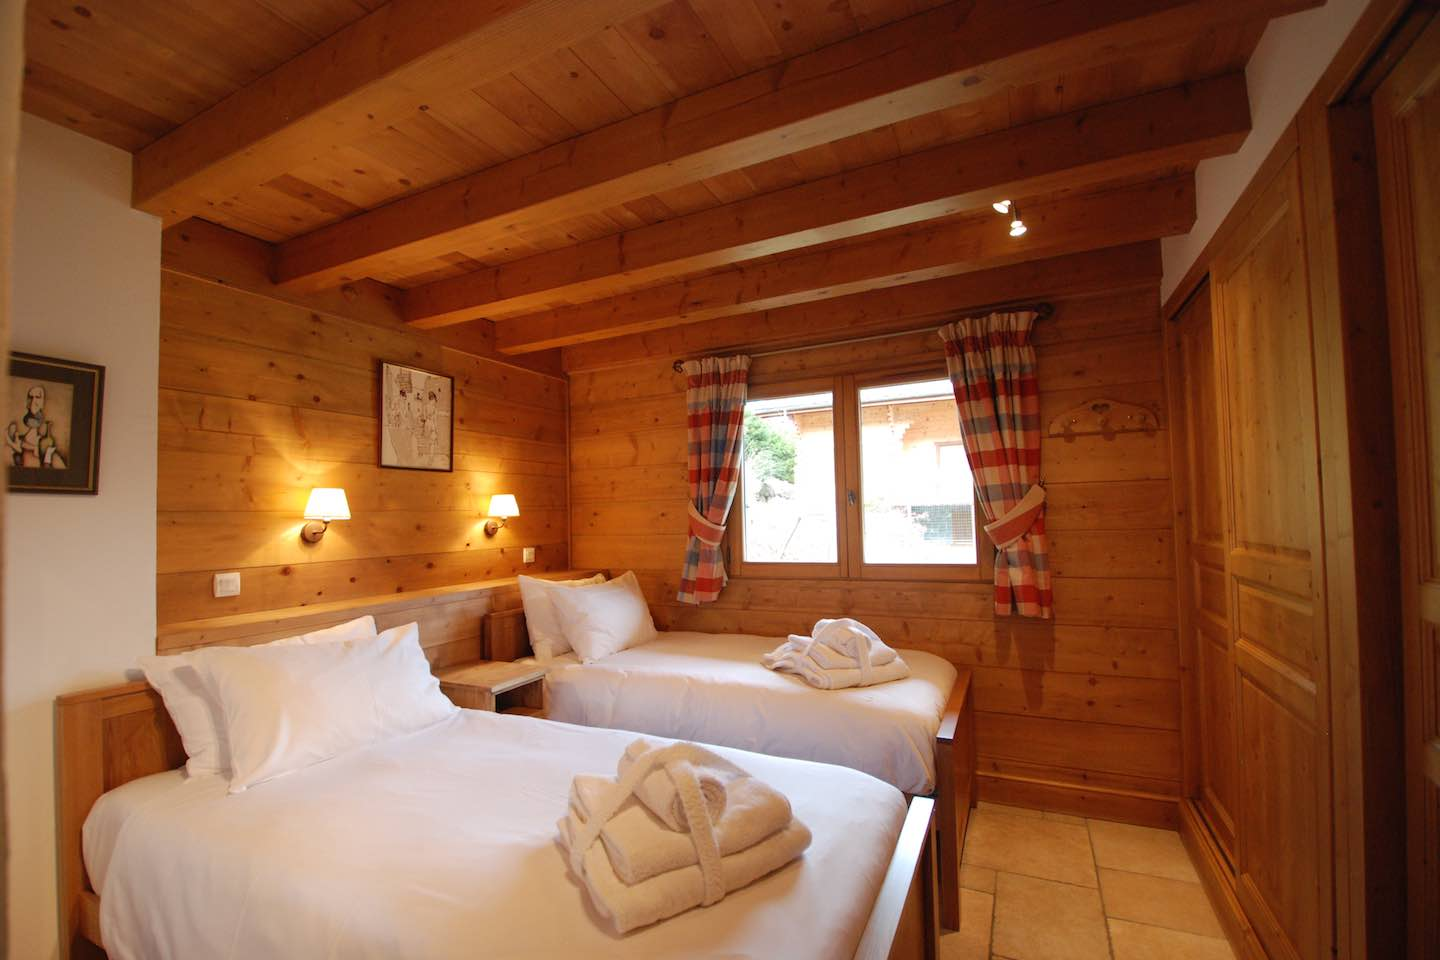 Morgan Jupe - Chalet des Amis - Bedroom 4